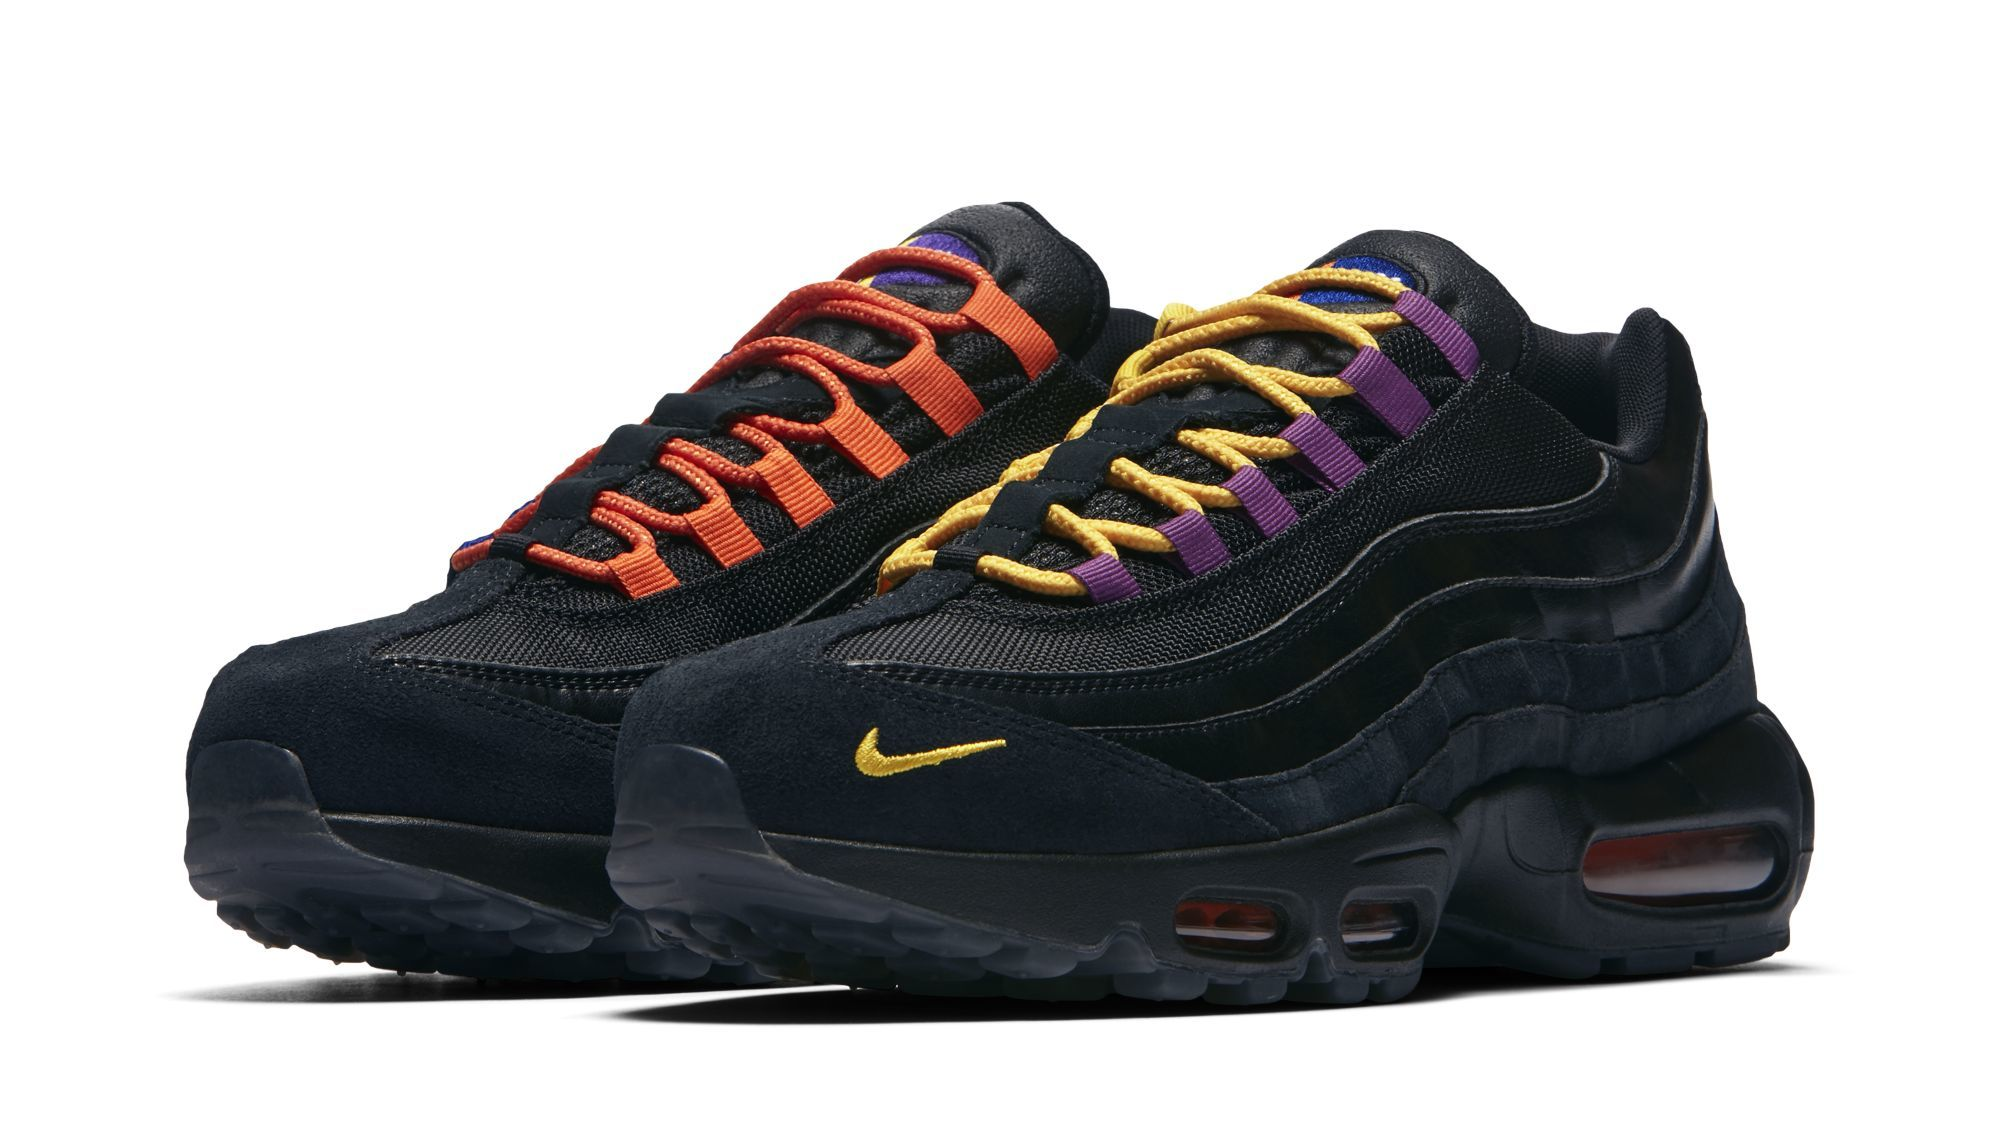 e820daefa5 Nike Air Max 95 Premium 'LA/NYC' Release Date | Sole Collector